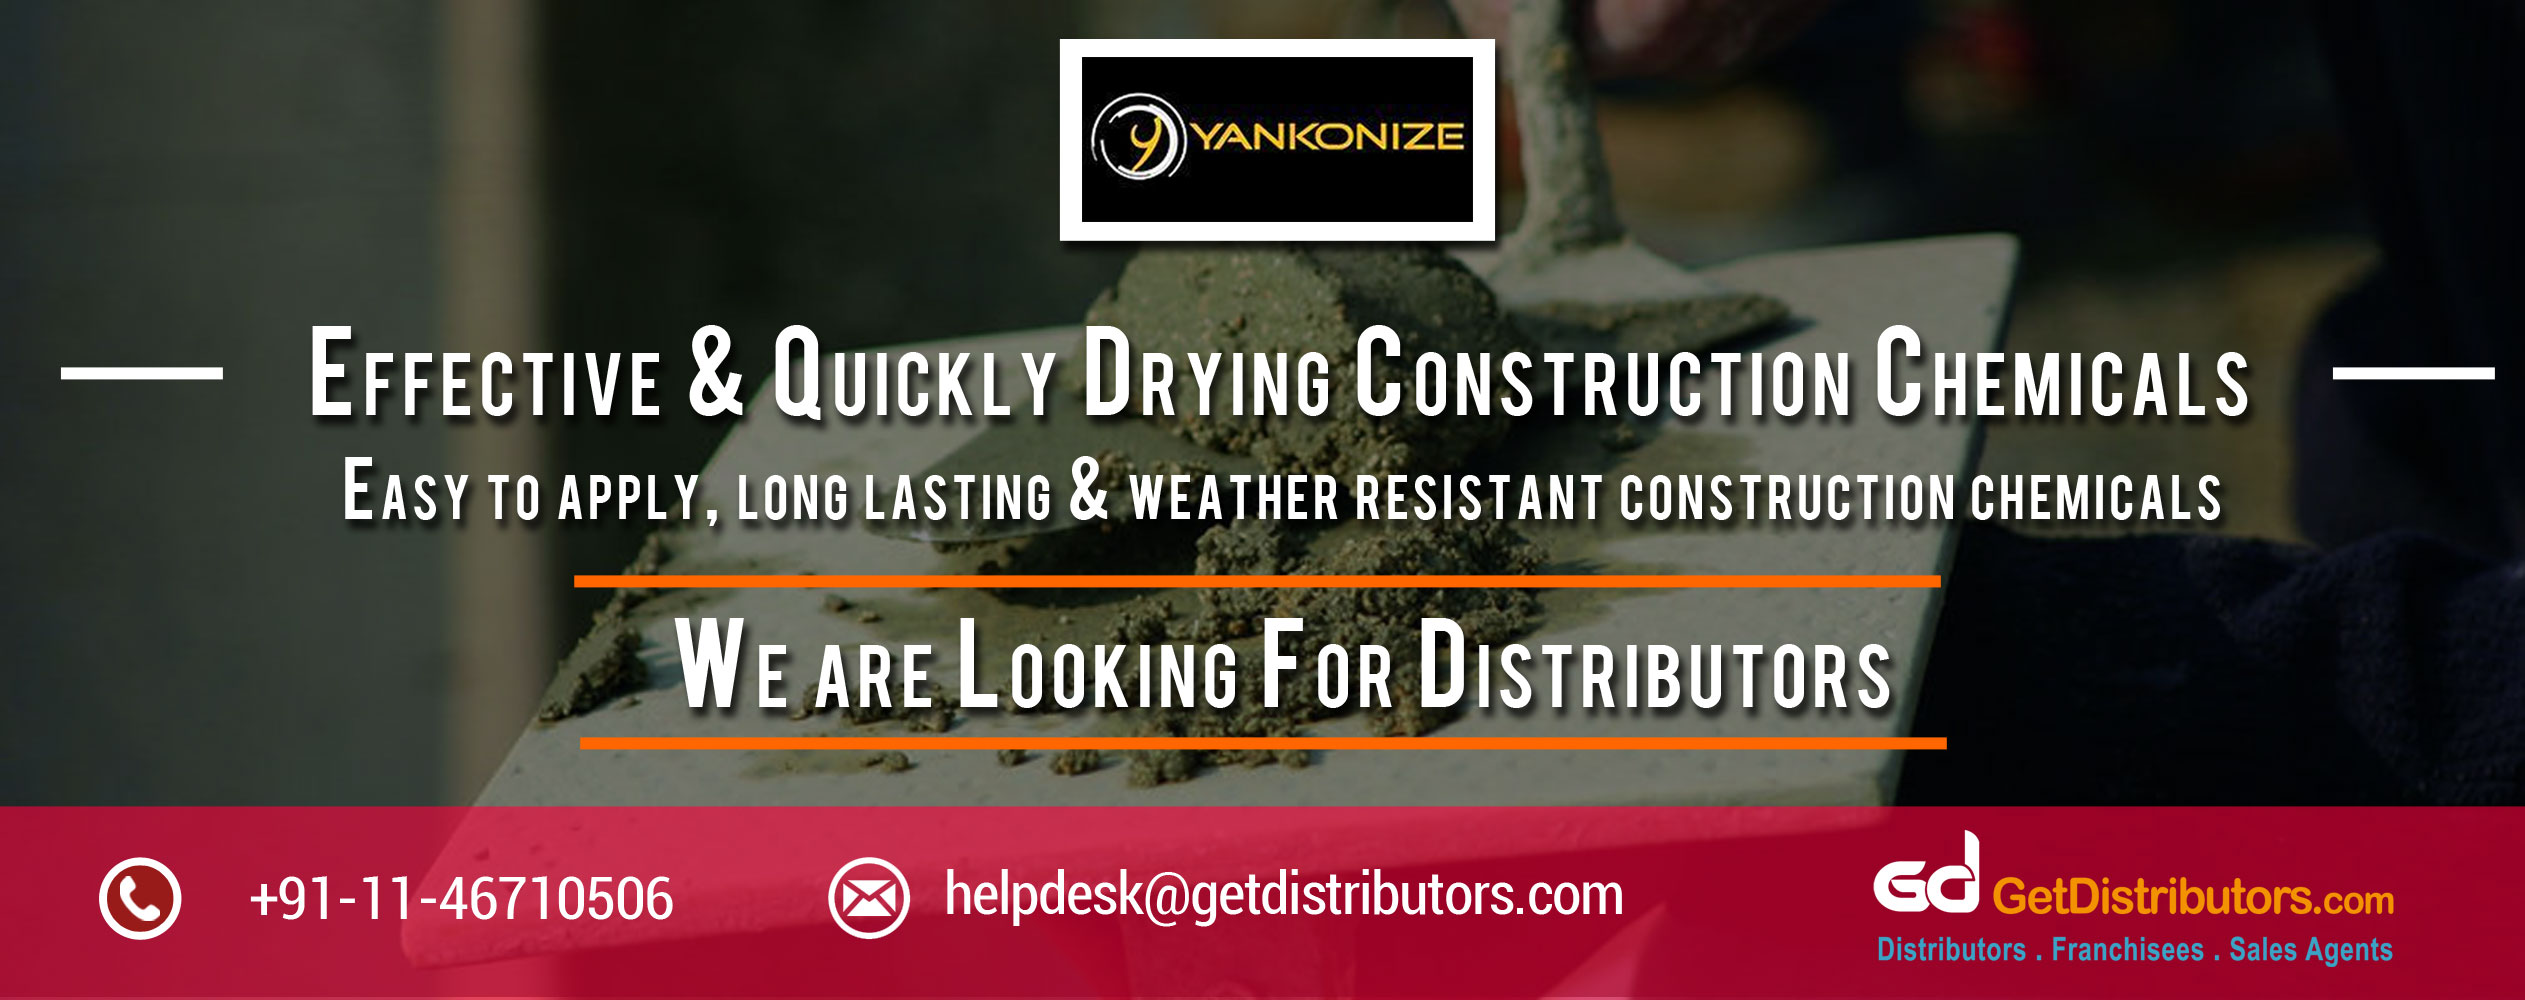 Effective & Quickly Drying Construction Chemicals